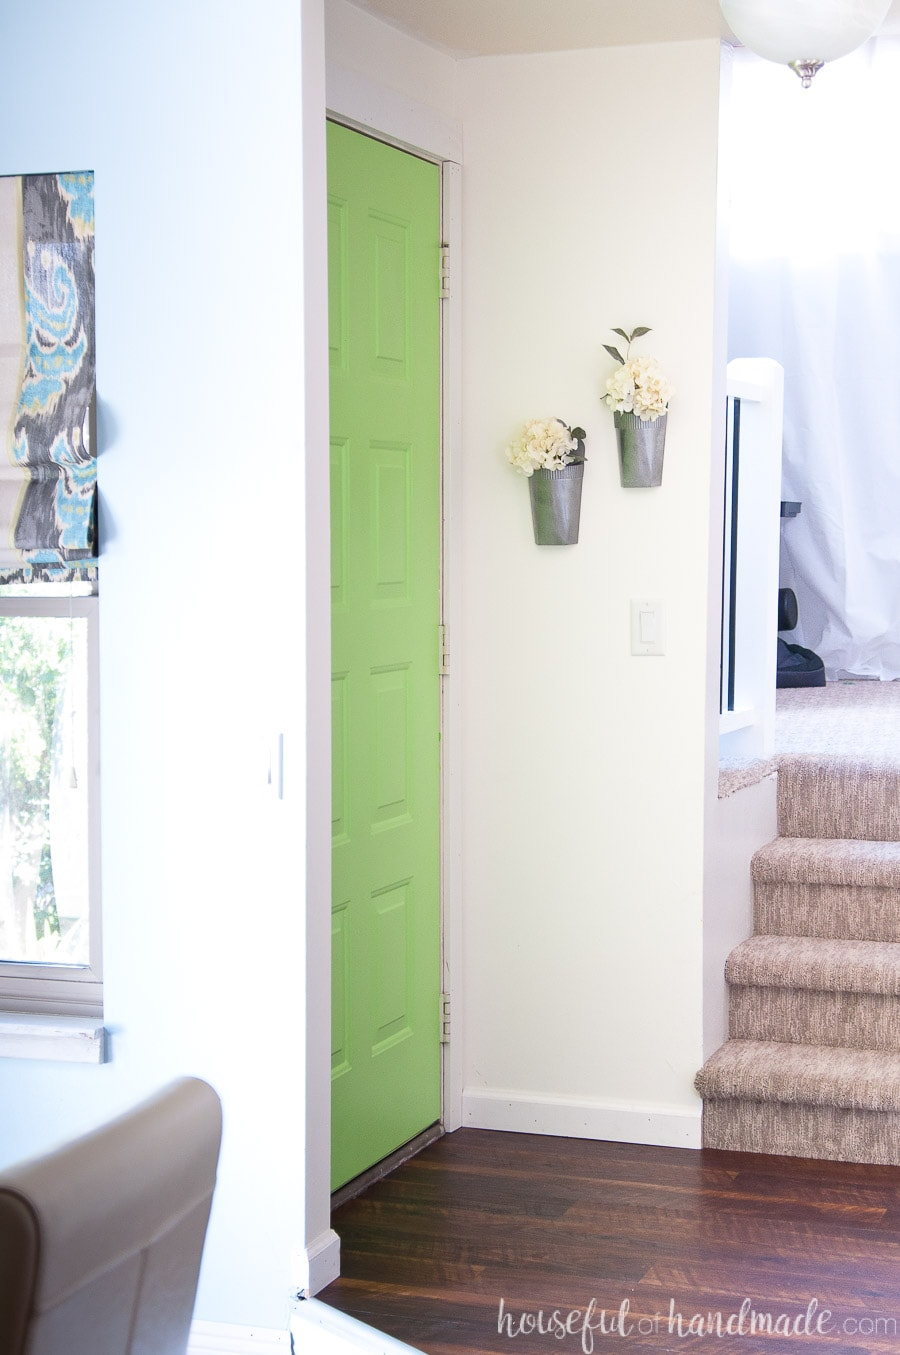 Entryway in the home with green door and faux metal wall vases hanging on the wall.